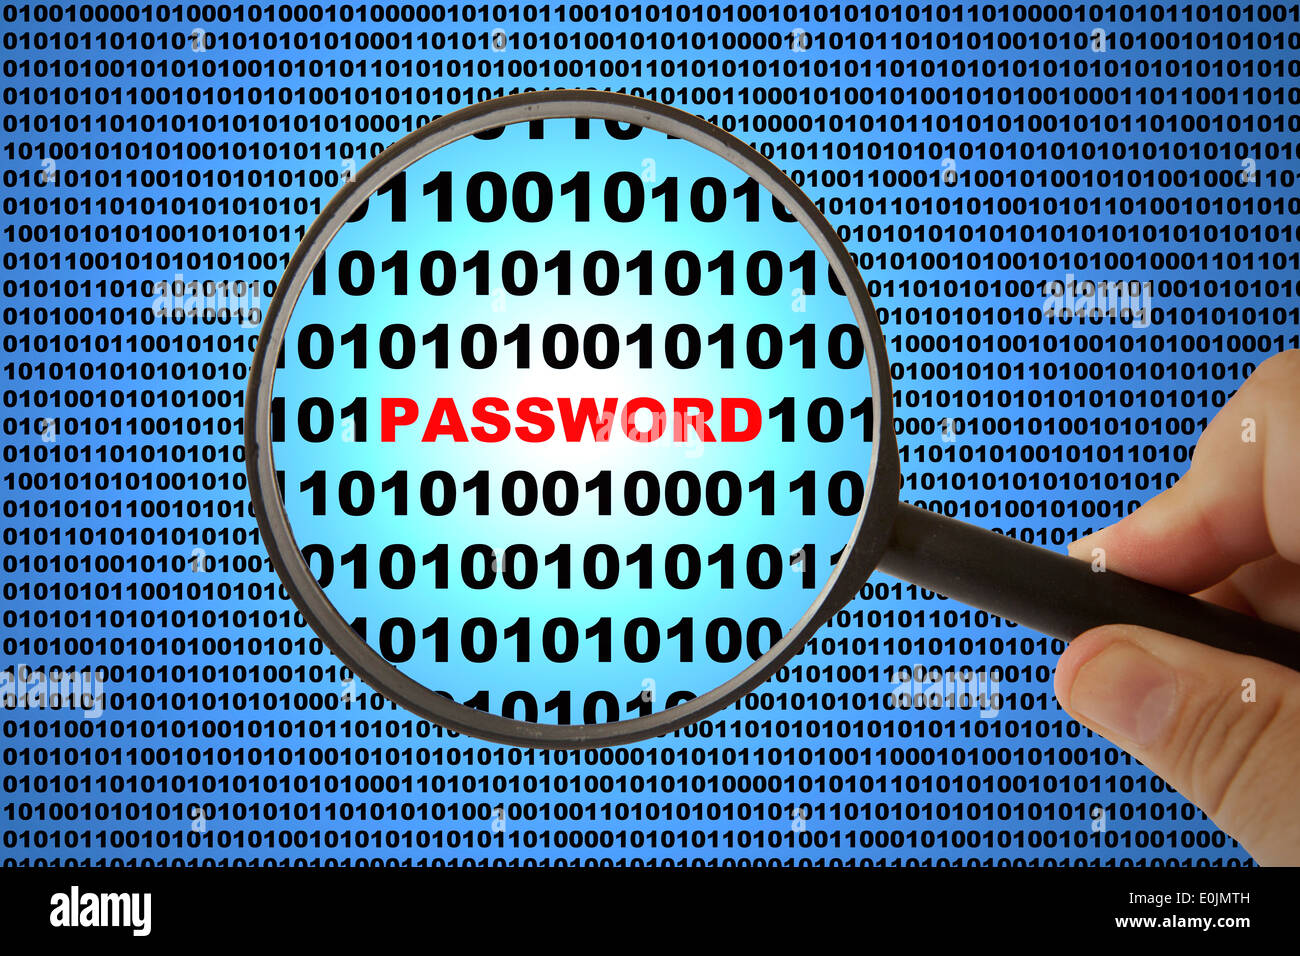 Computer Altered Stock Photos Images Alamy Circuit Board And Binary Code Forming A Mysterious Night Landscape Of Security Concept Shot With Password Text Image